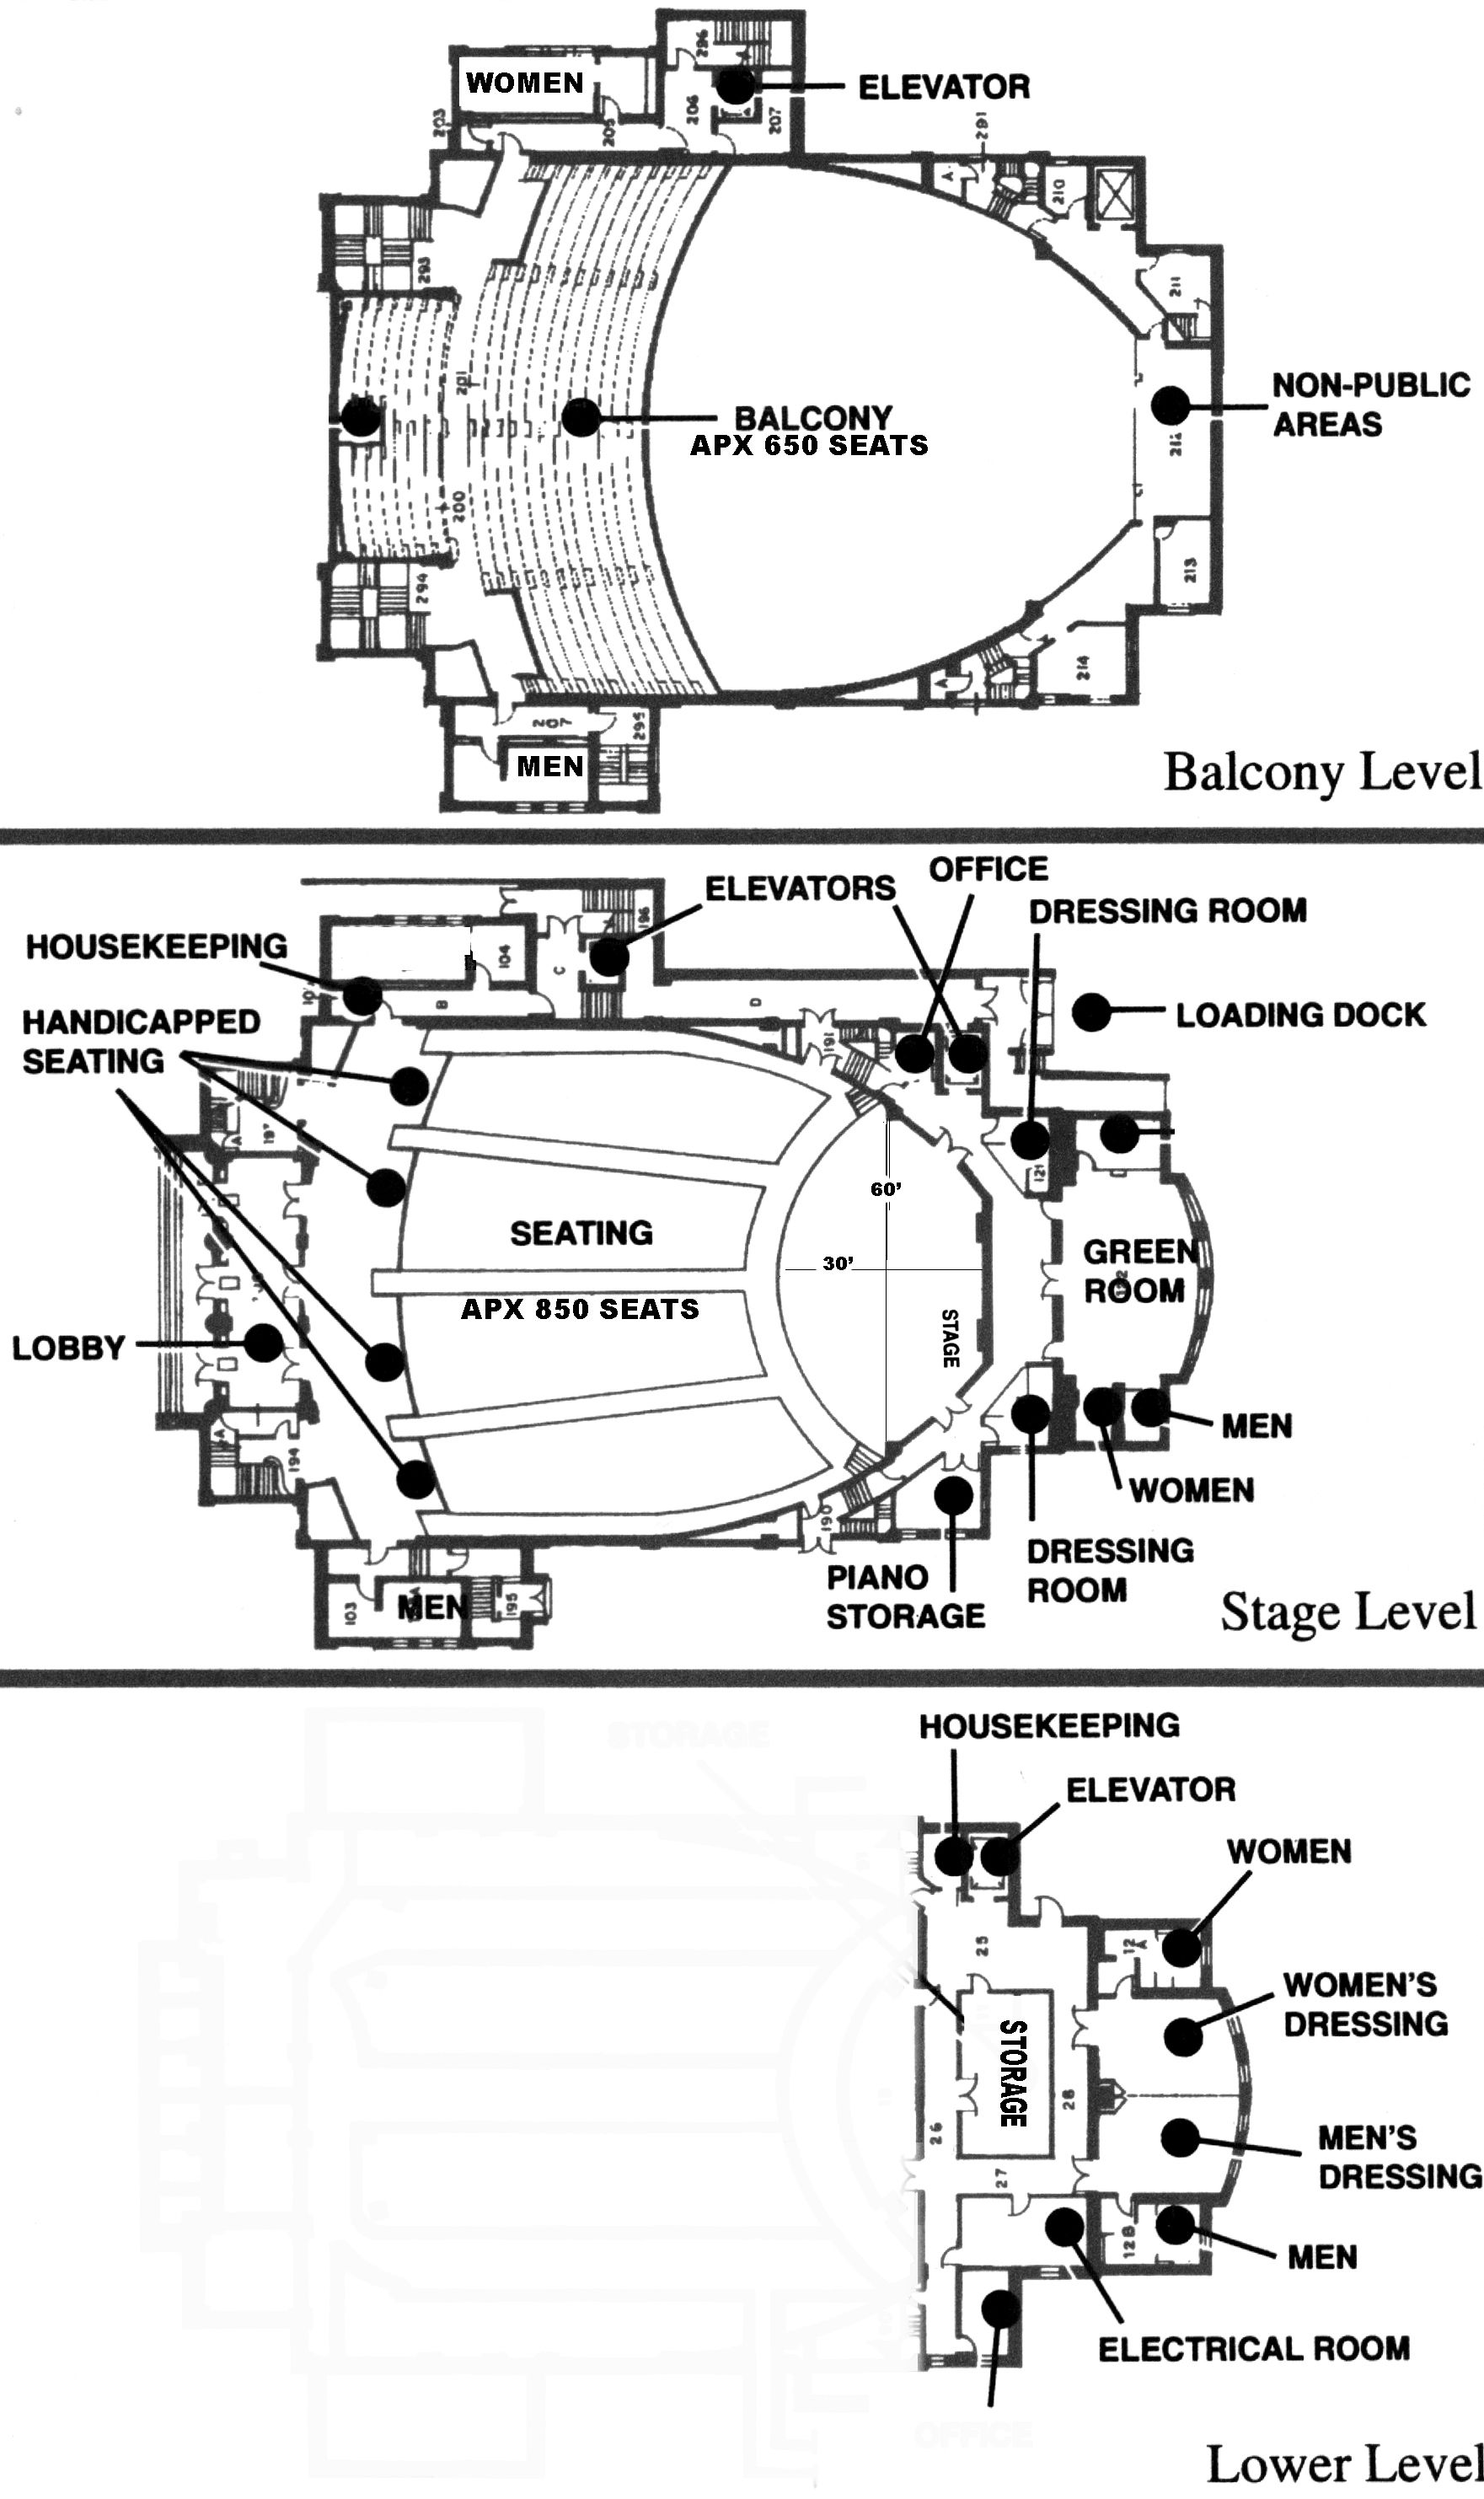 Eastern Michigan University Pease Auditorium Floor Plan